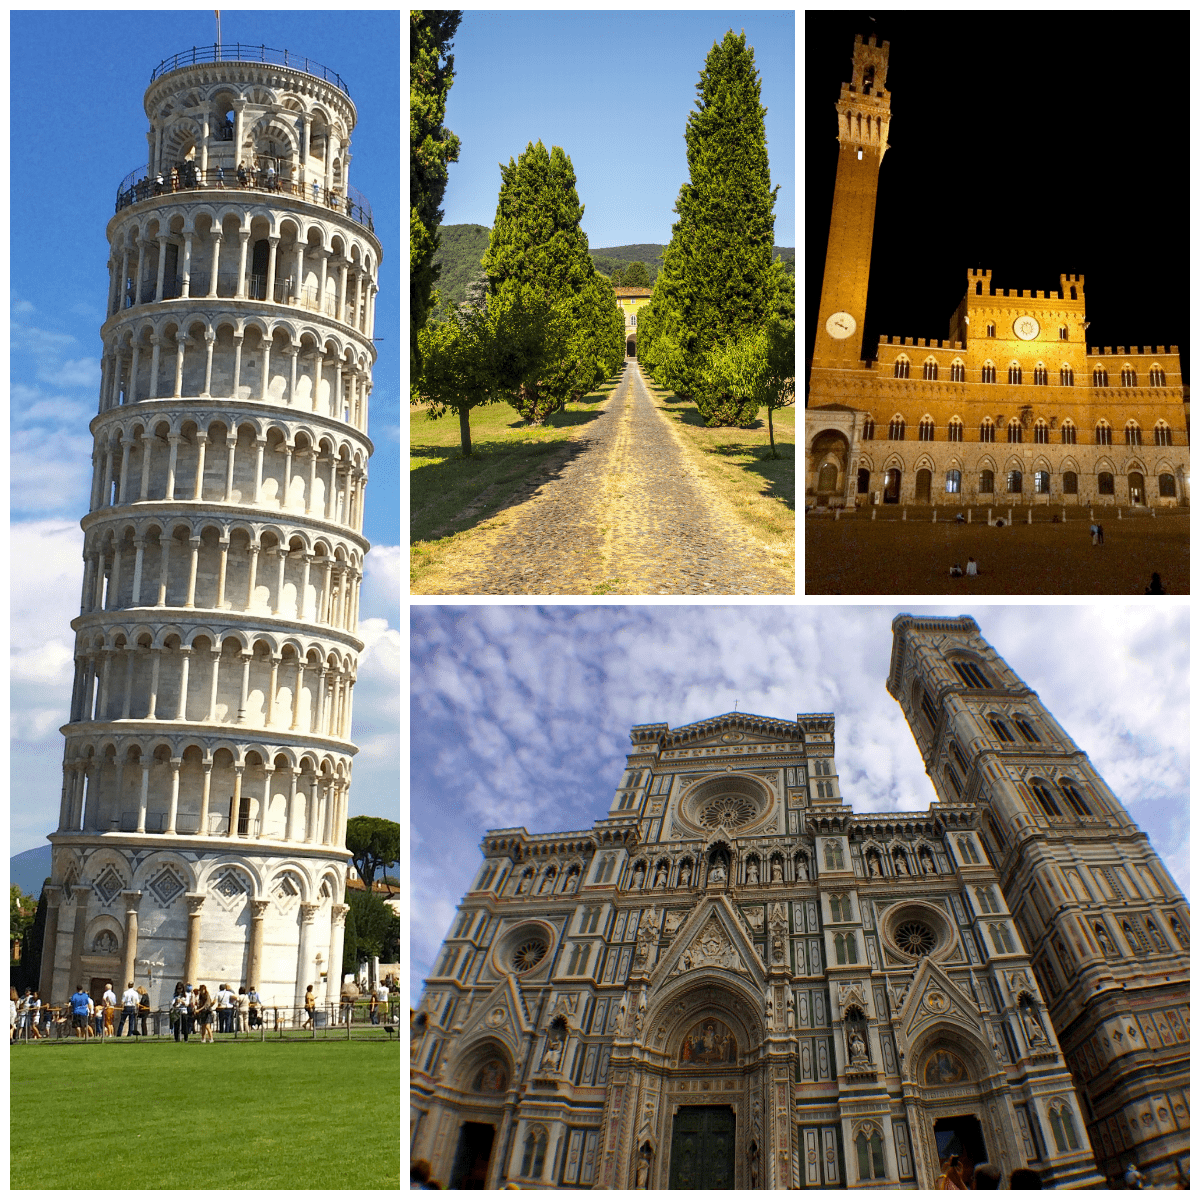 images of several historic landmarks in Tuscany